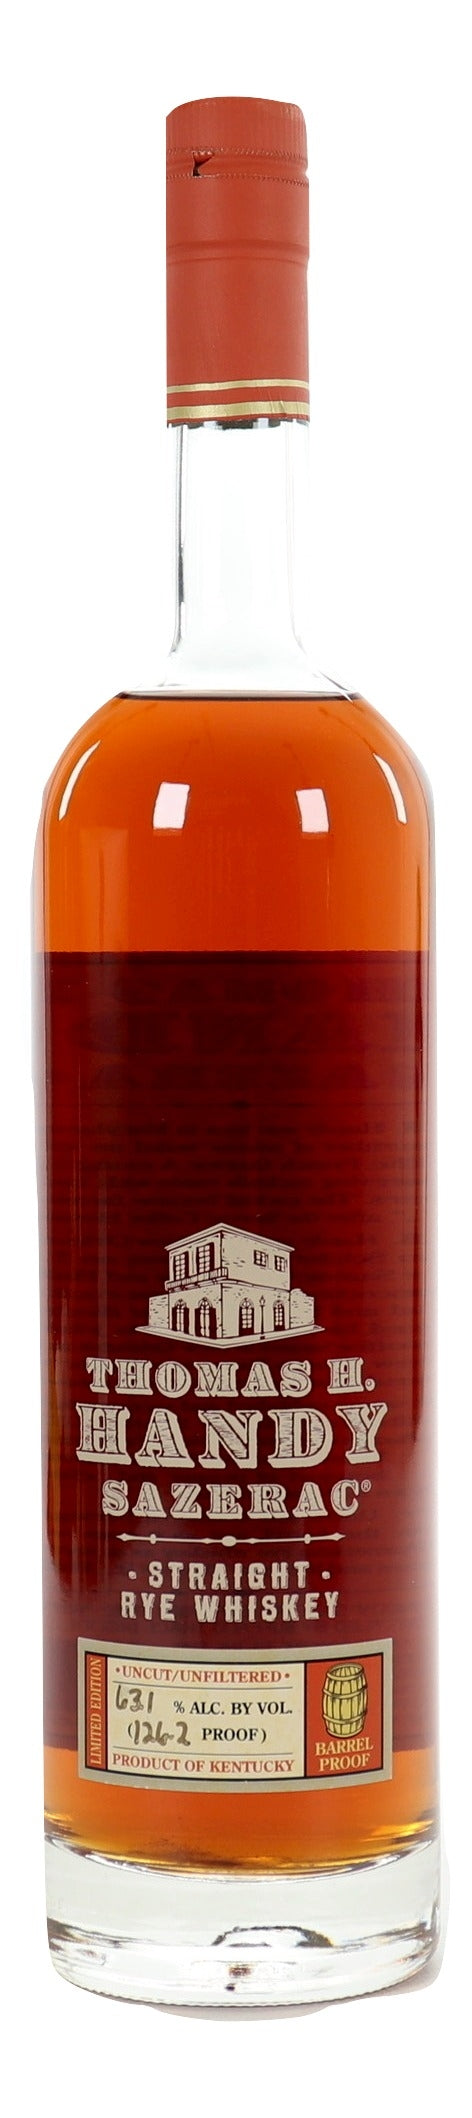 Thomas H. Handy Sazerac 2016 Straight Rye - NativeSpiritsOnline